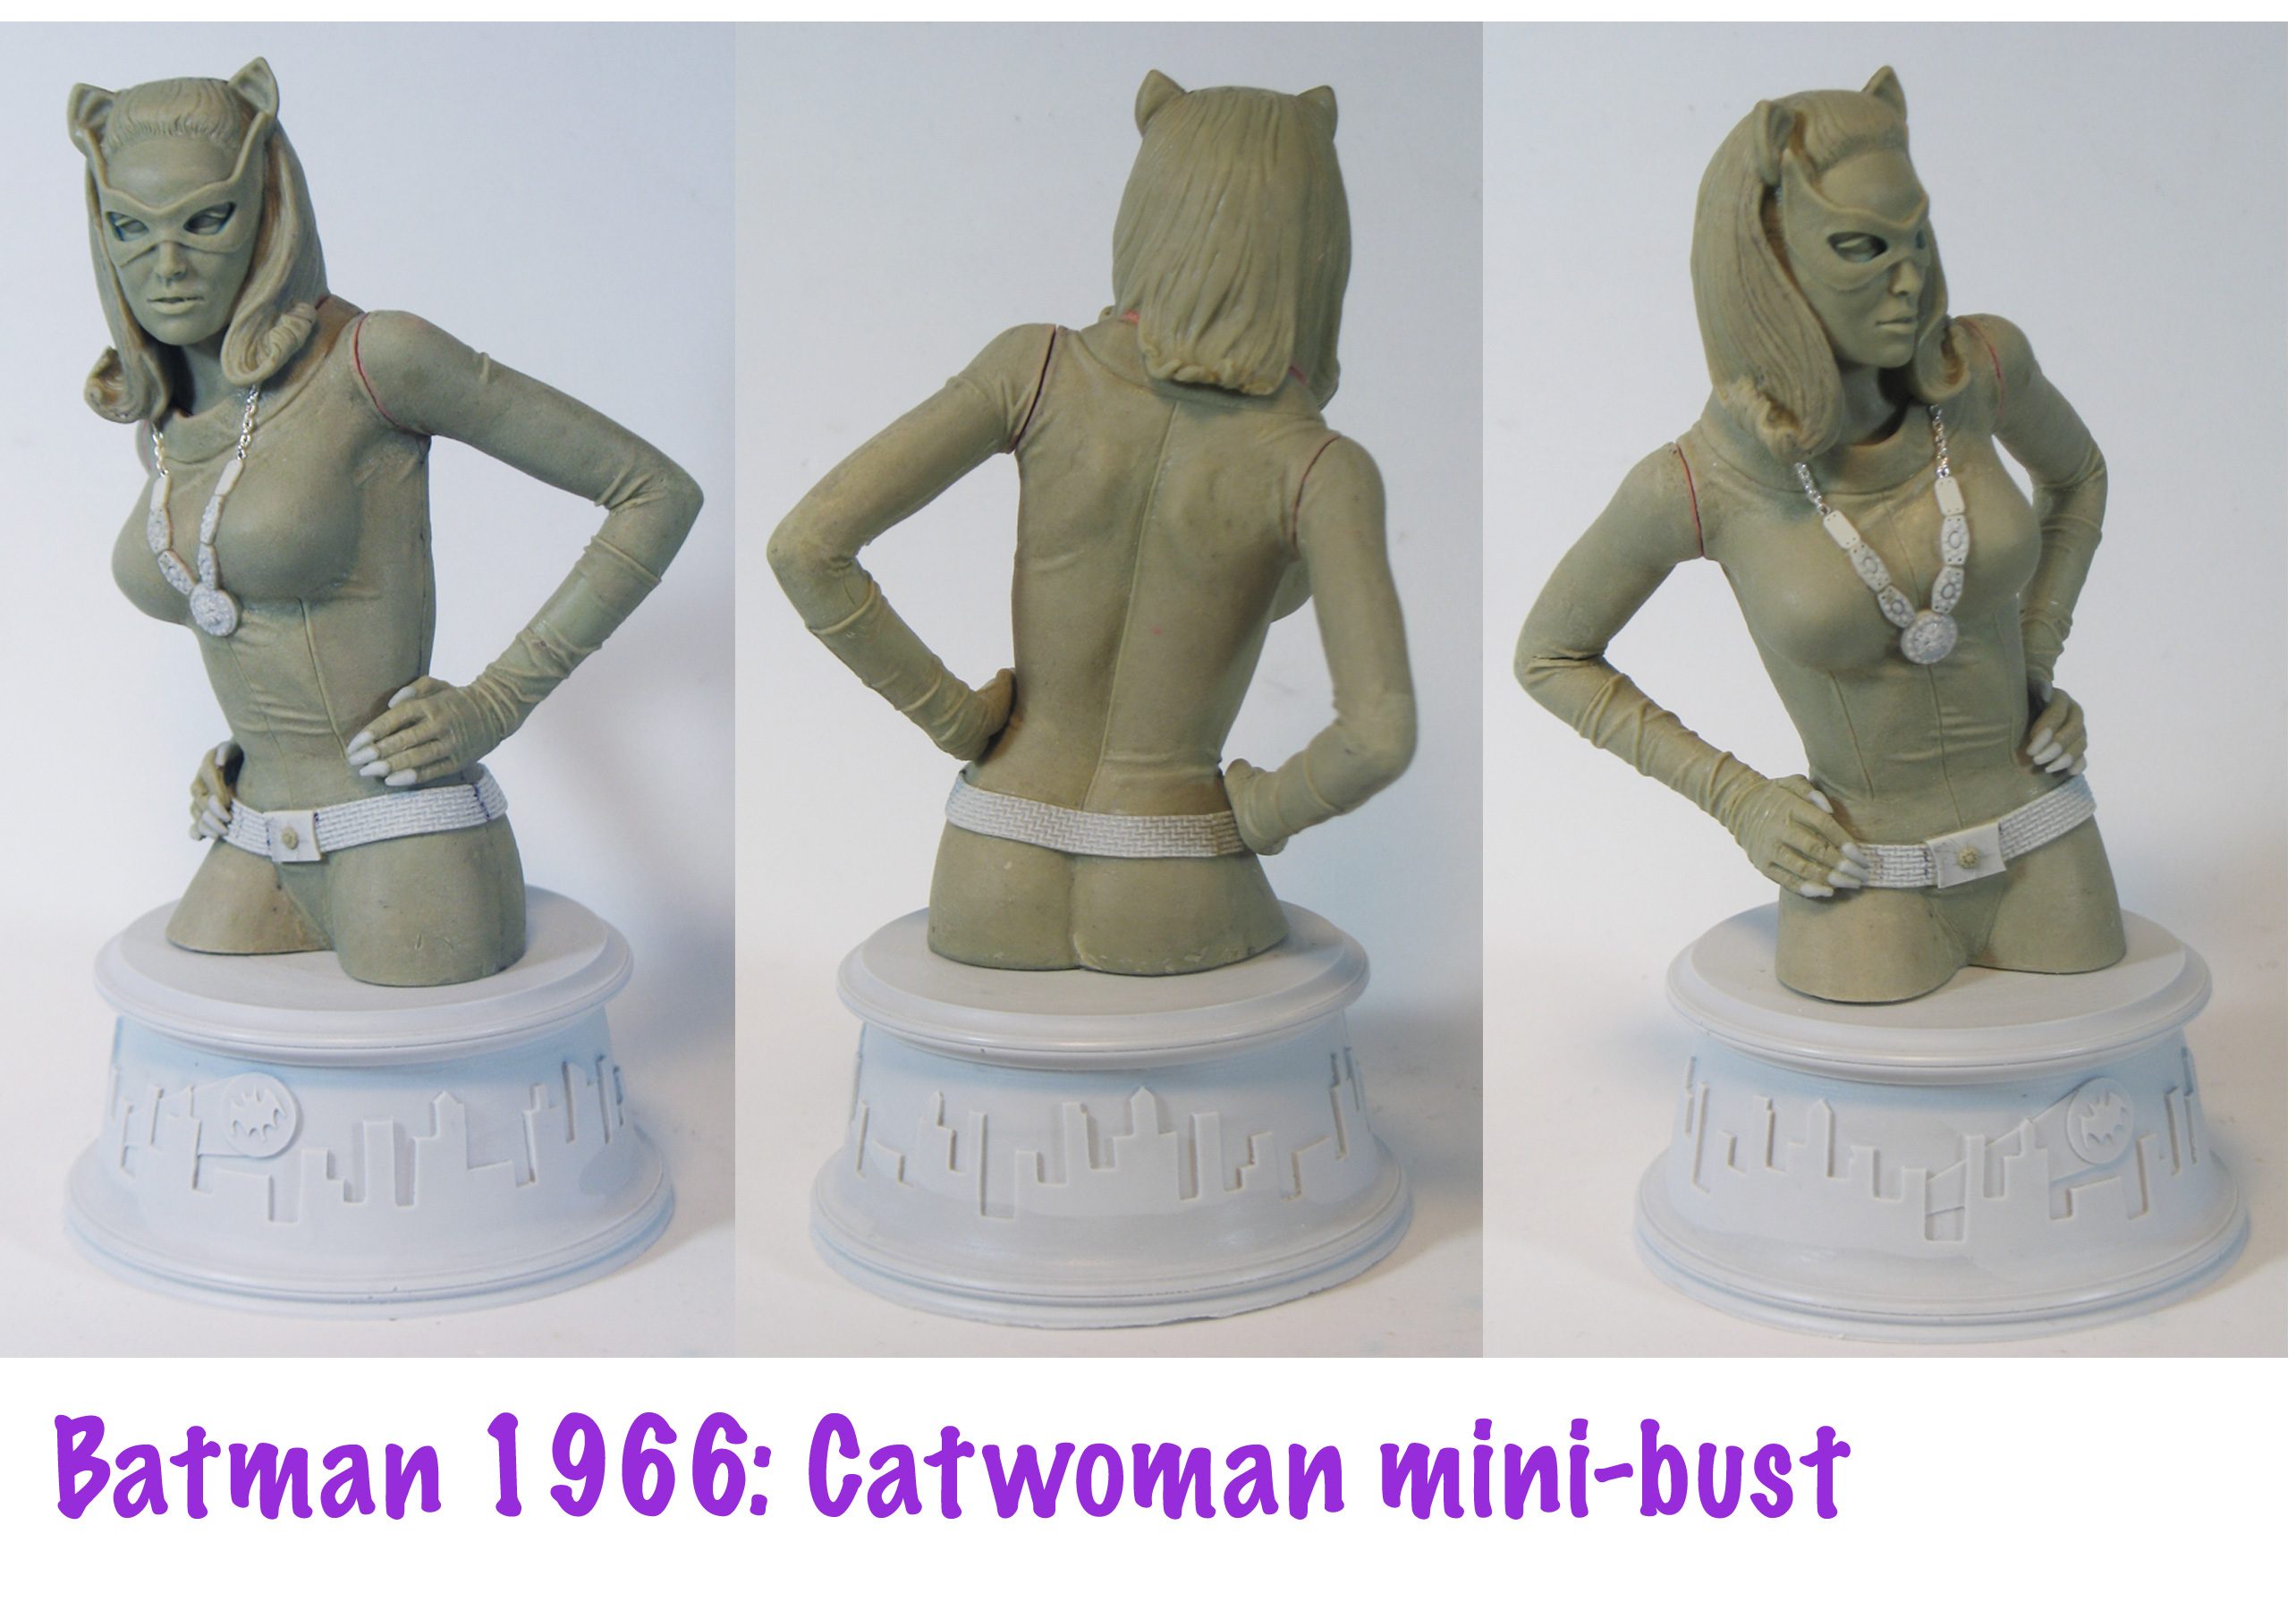 catwoman-66-minibust-clay